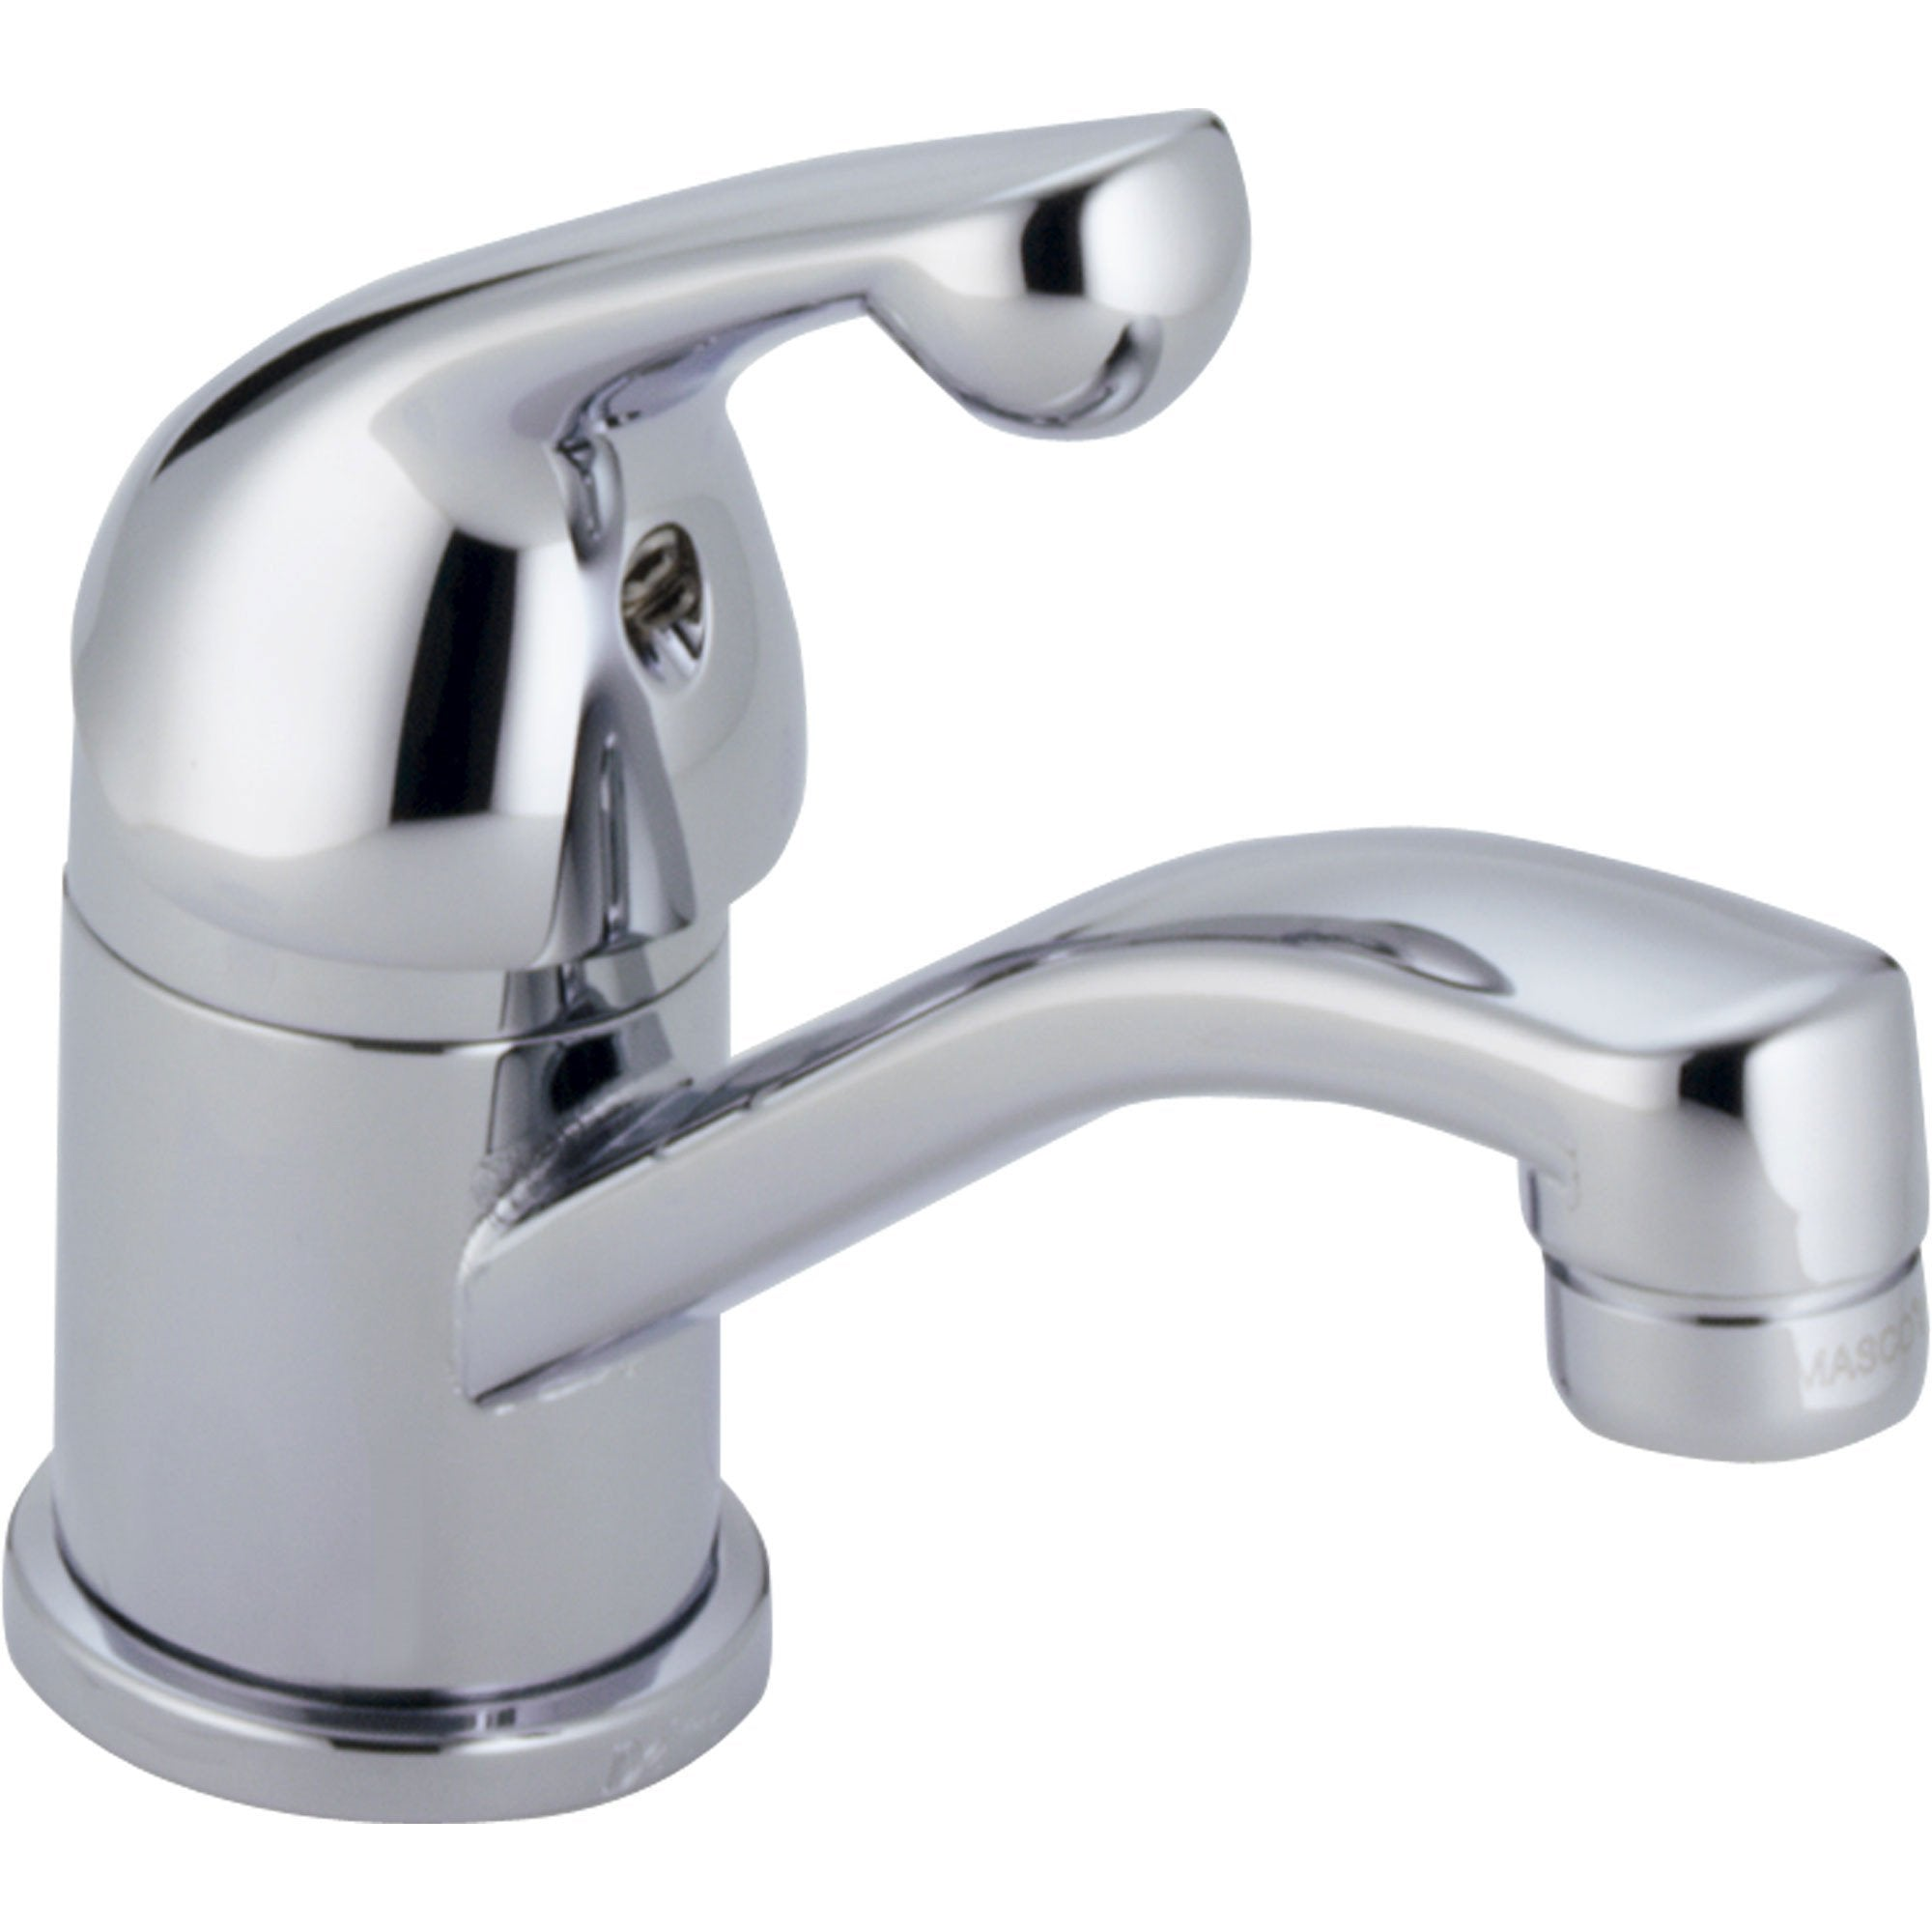 Delta Single Hole 1-Handle Chrome Specialty Bathroom Sink Faucet 614943